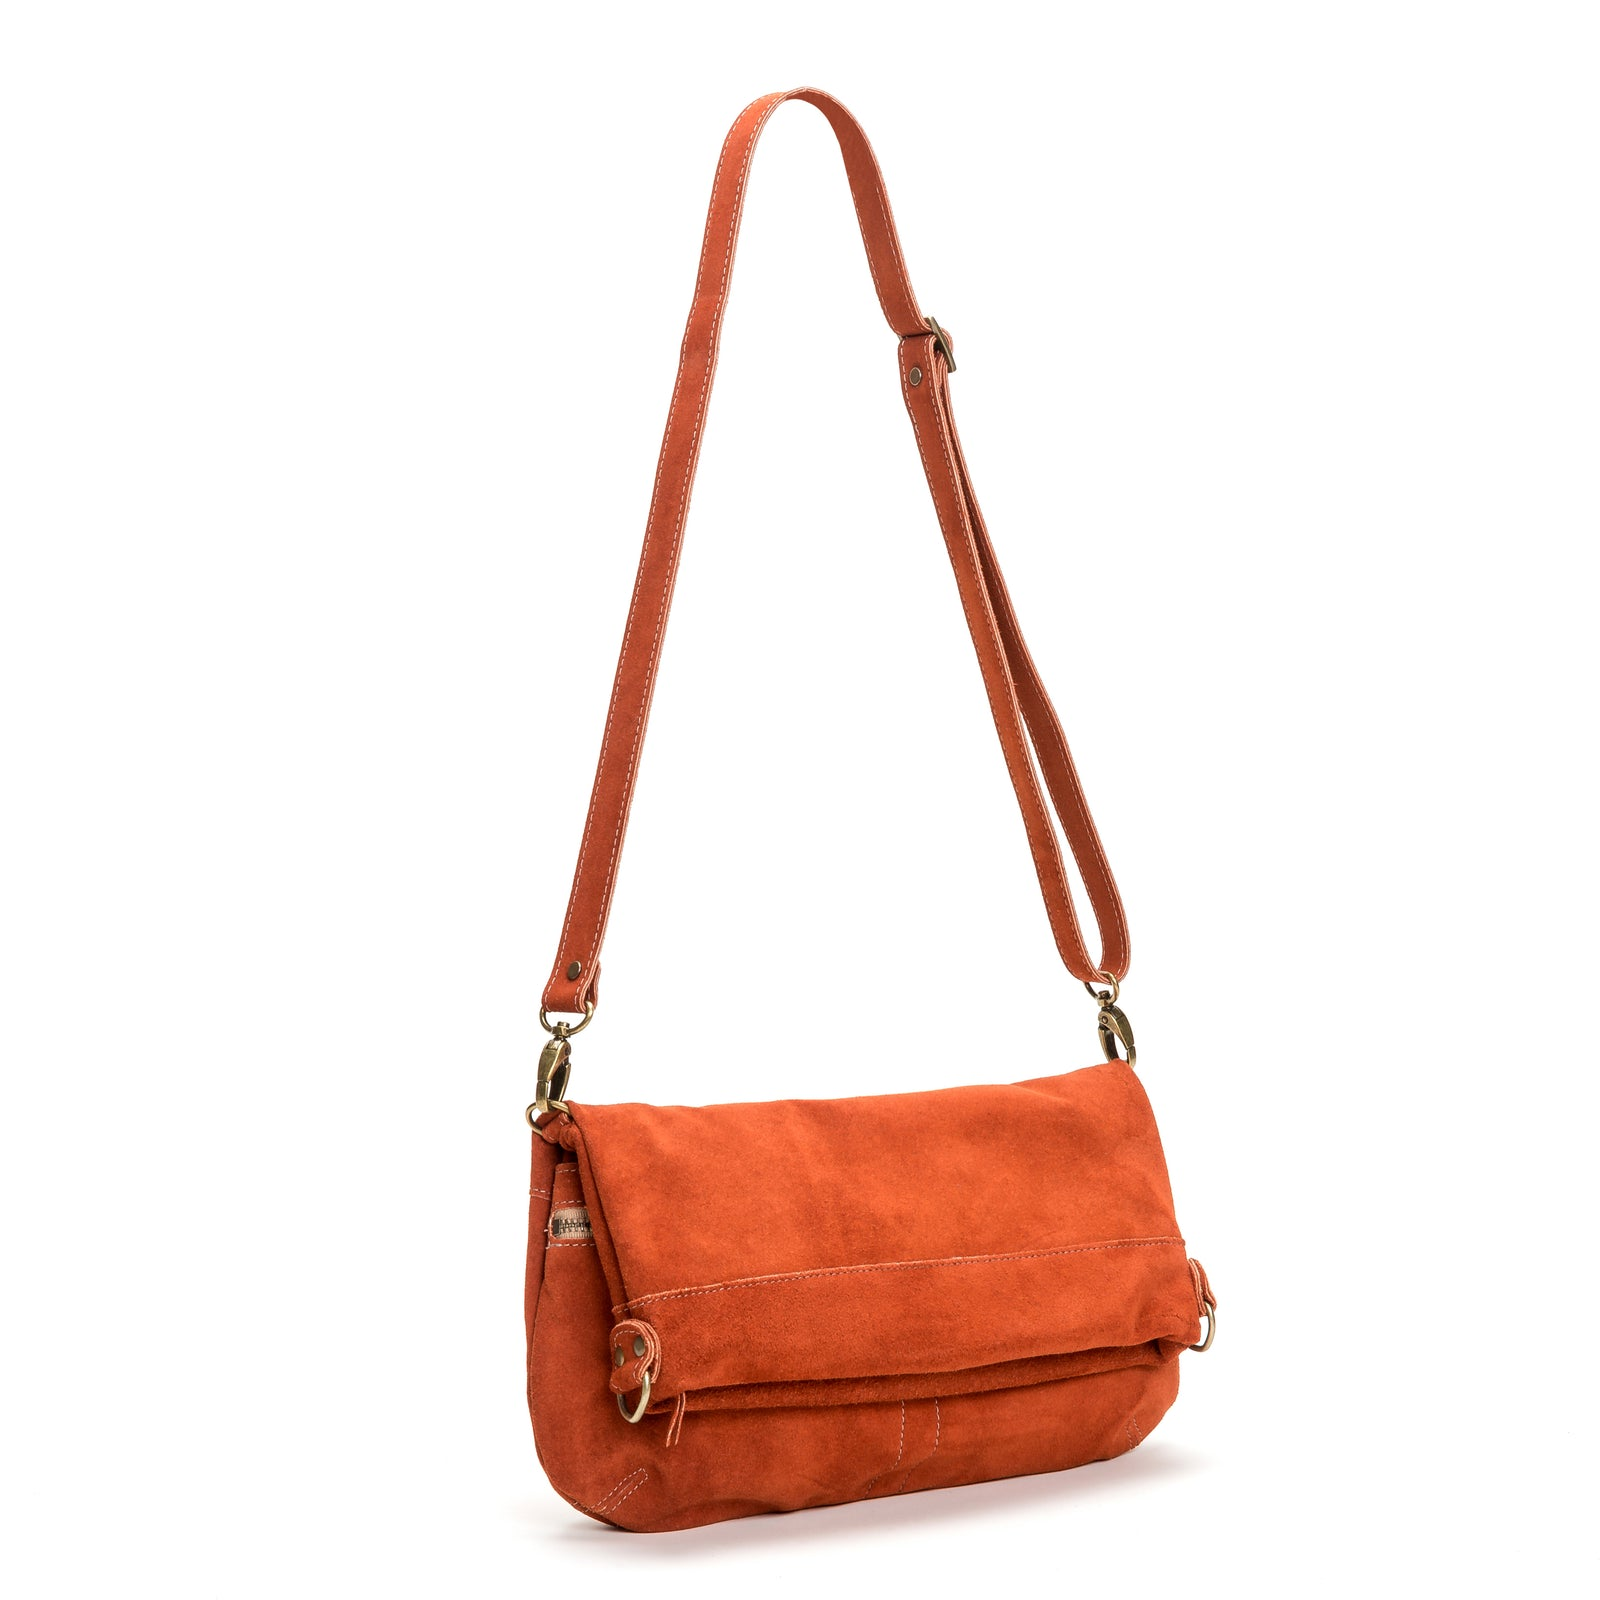 Mini-Lauren Crossbody - Cinnamon - Brynn Capella, Medium Crossbody